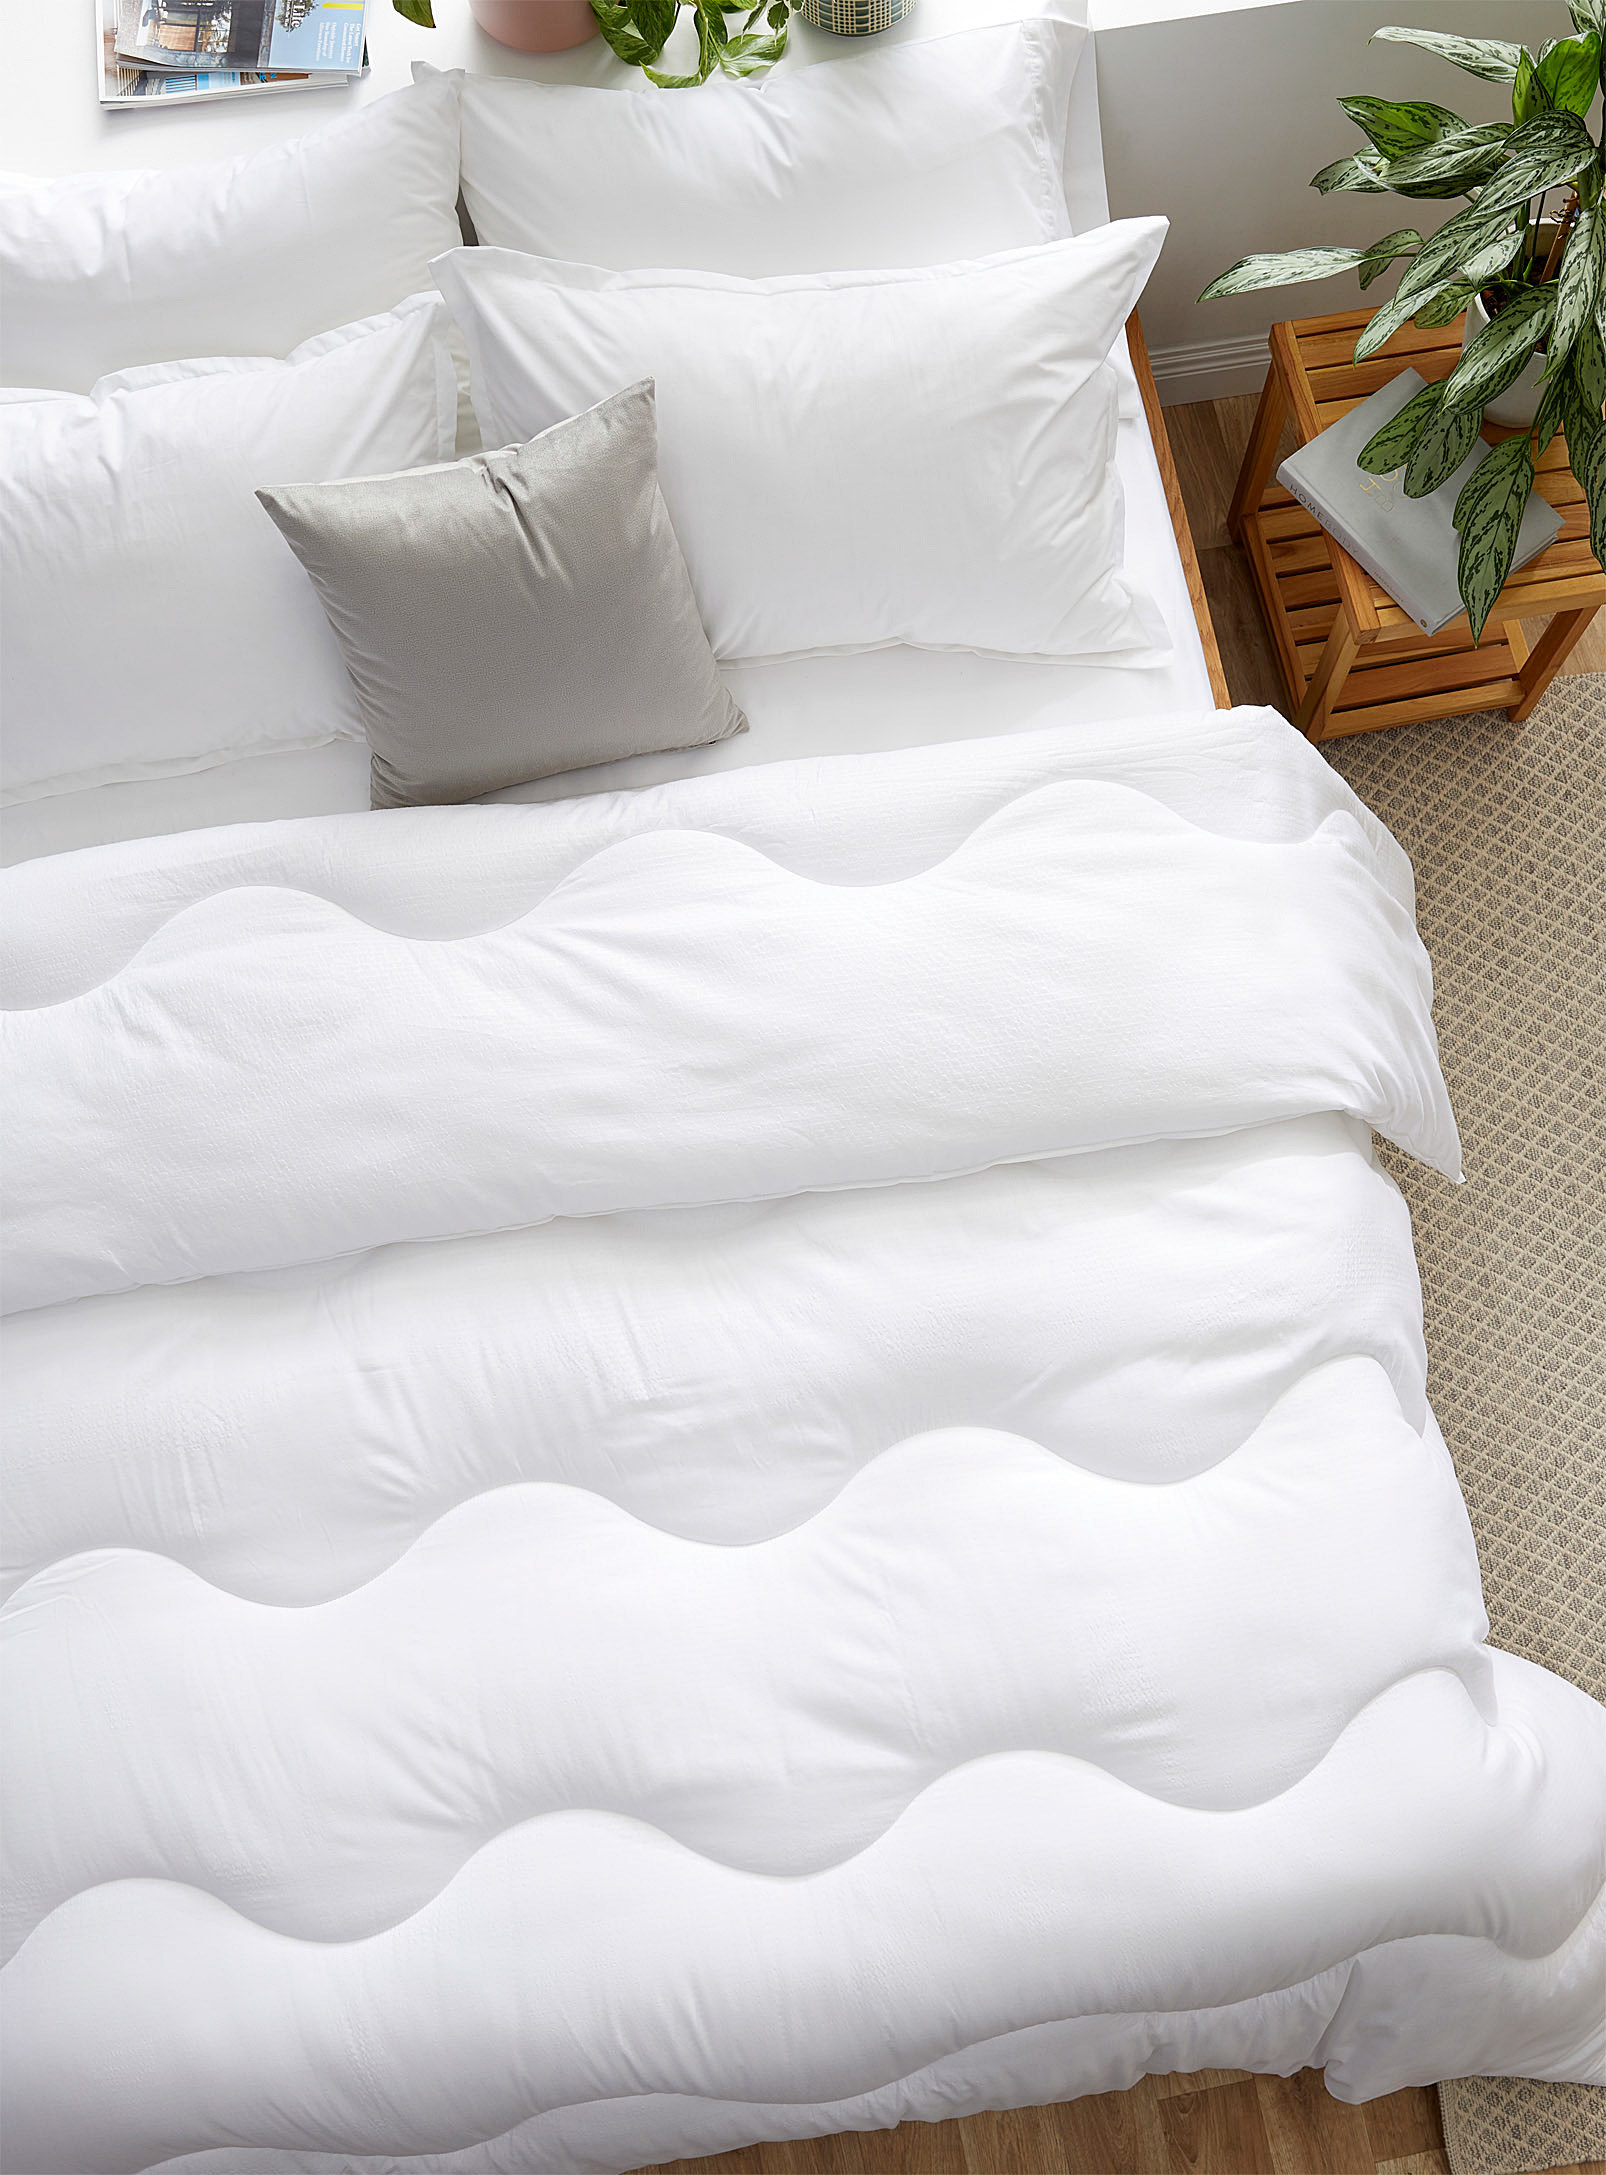 A top-down view of the fluffy duvet blanket on a bed